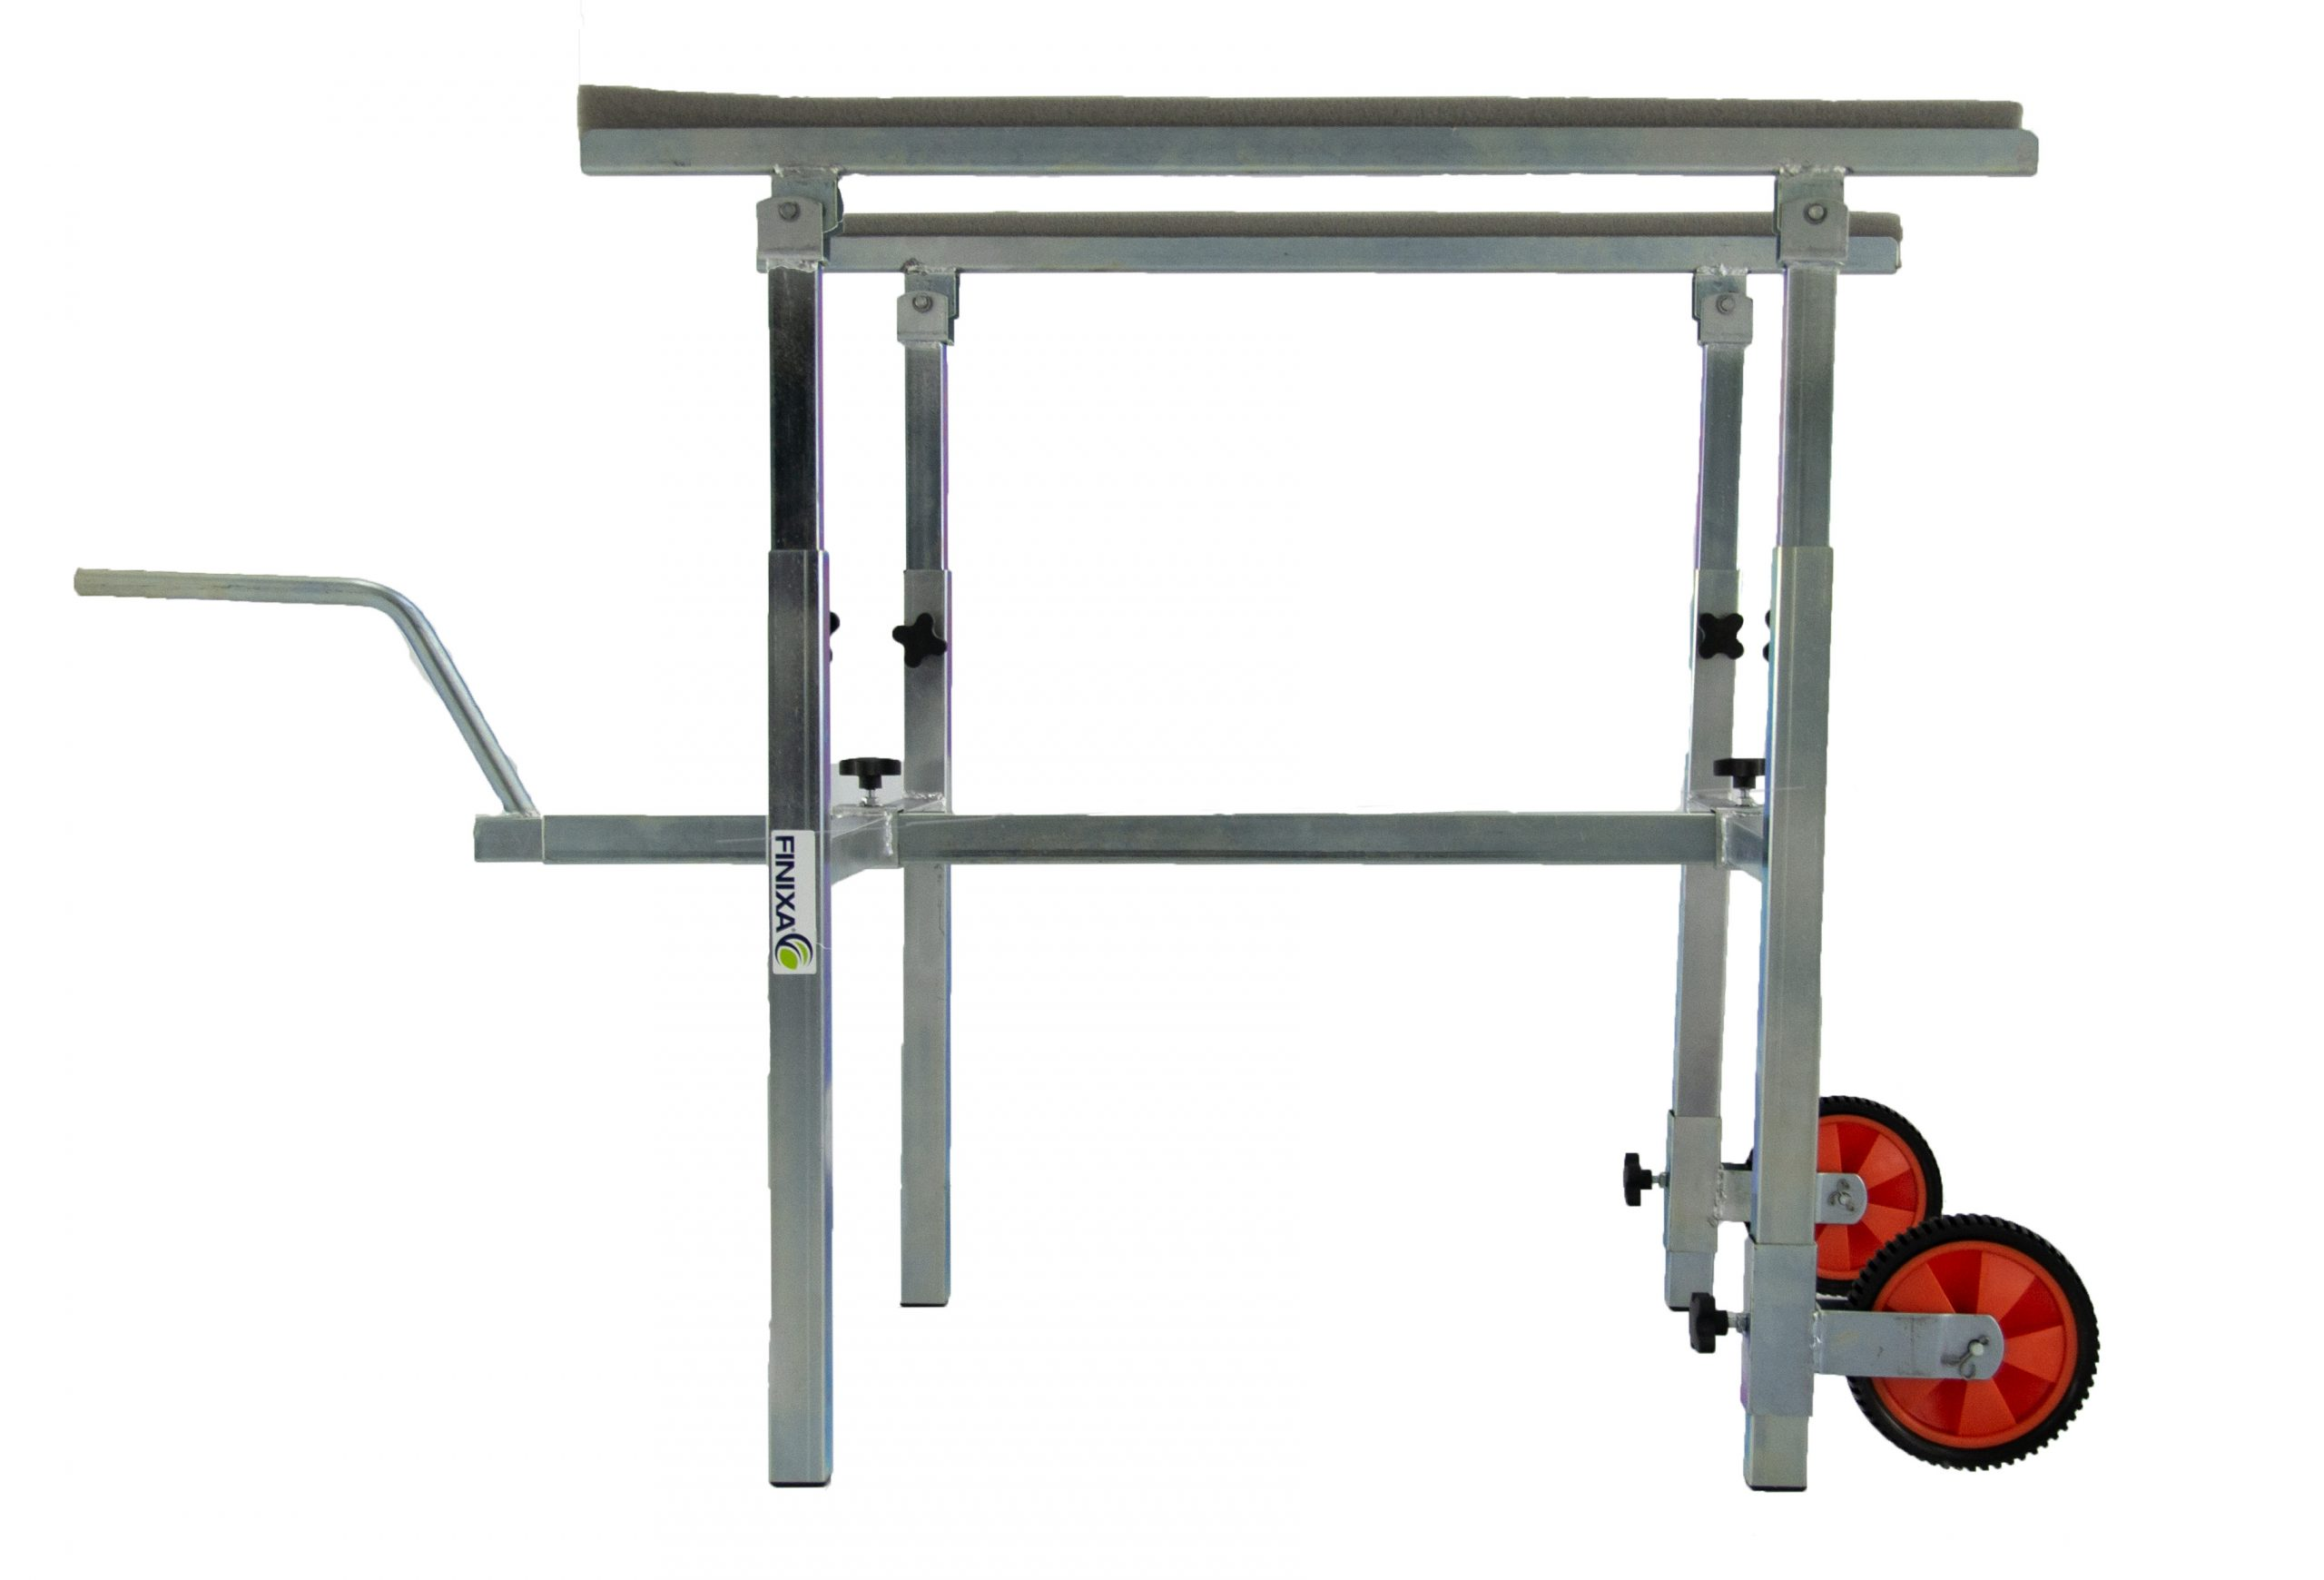 Wheel and panel stand